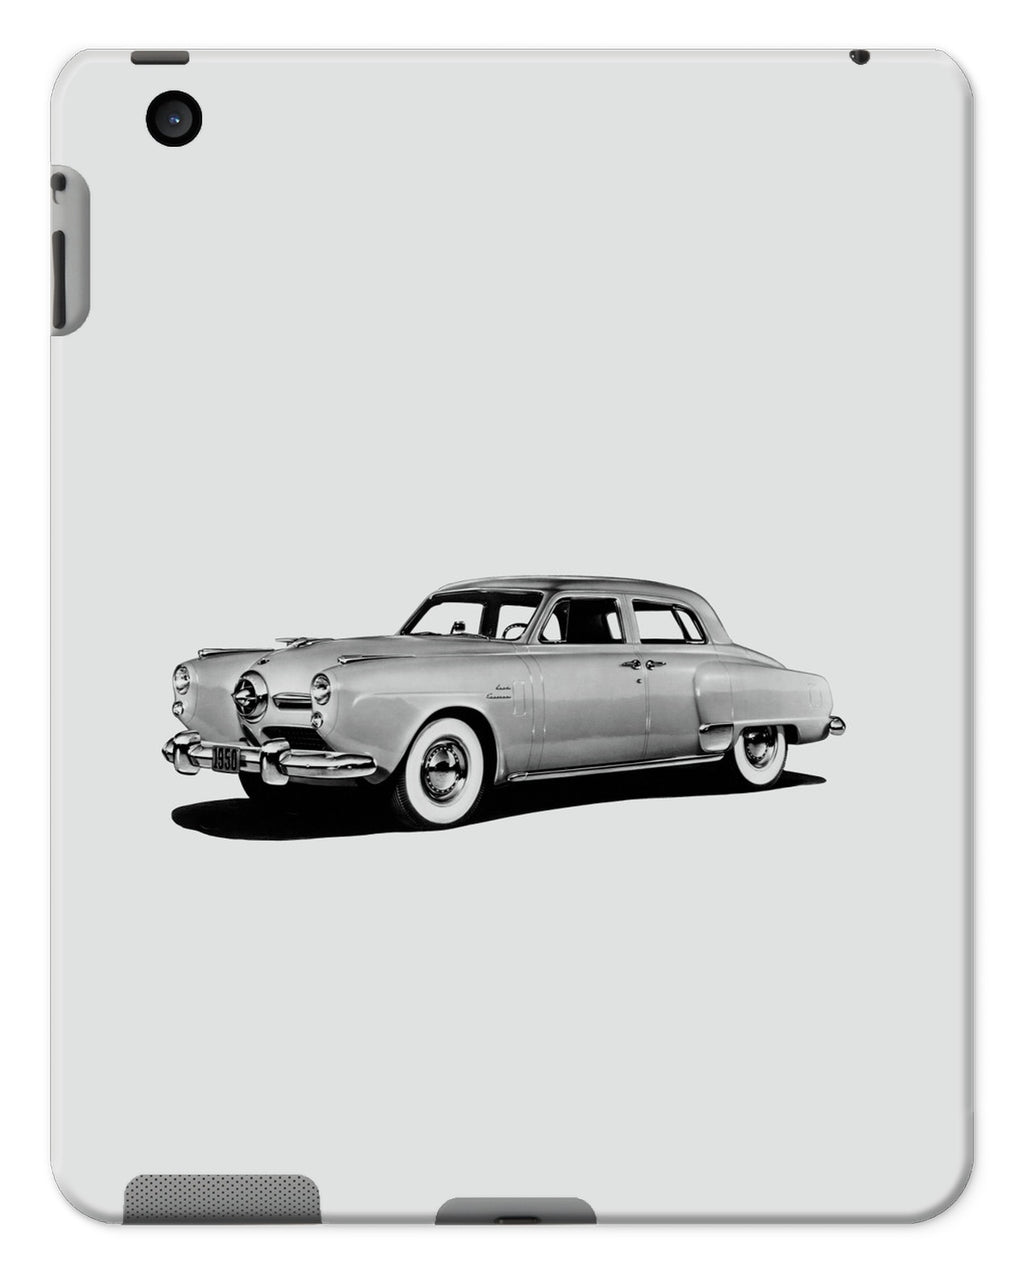 1950 Studebaker® Land Cruiser Tablet Cases